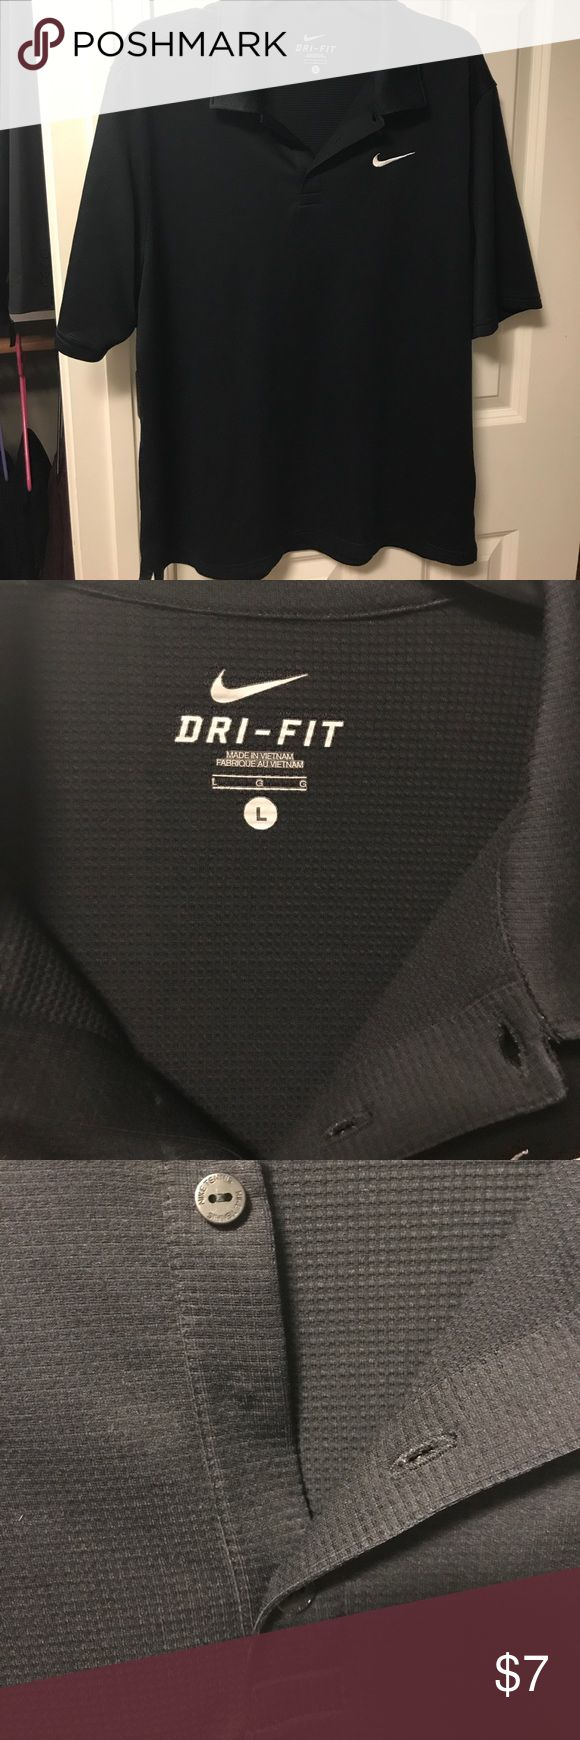 Men's Nike Dri-fit golf polo shirt size Large Good condition. Missing one button as pictured. Men's Nike Dri-Fit Golf polo shirt. Black, with white nike logo. Short sleeves. Size large Nike Shirts Polos